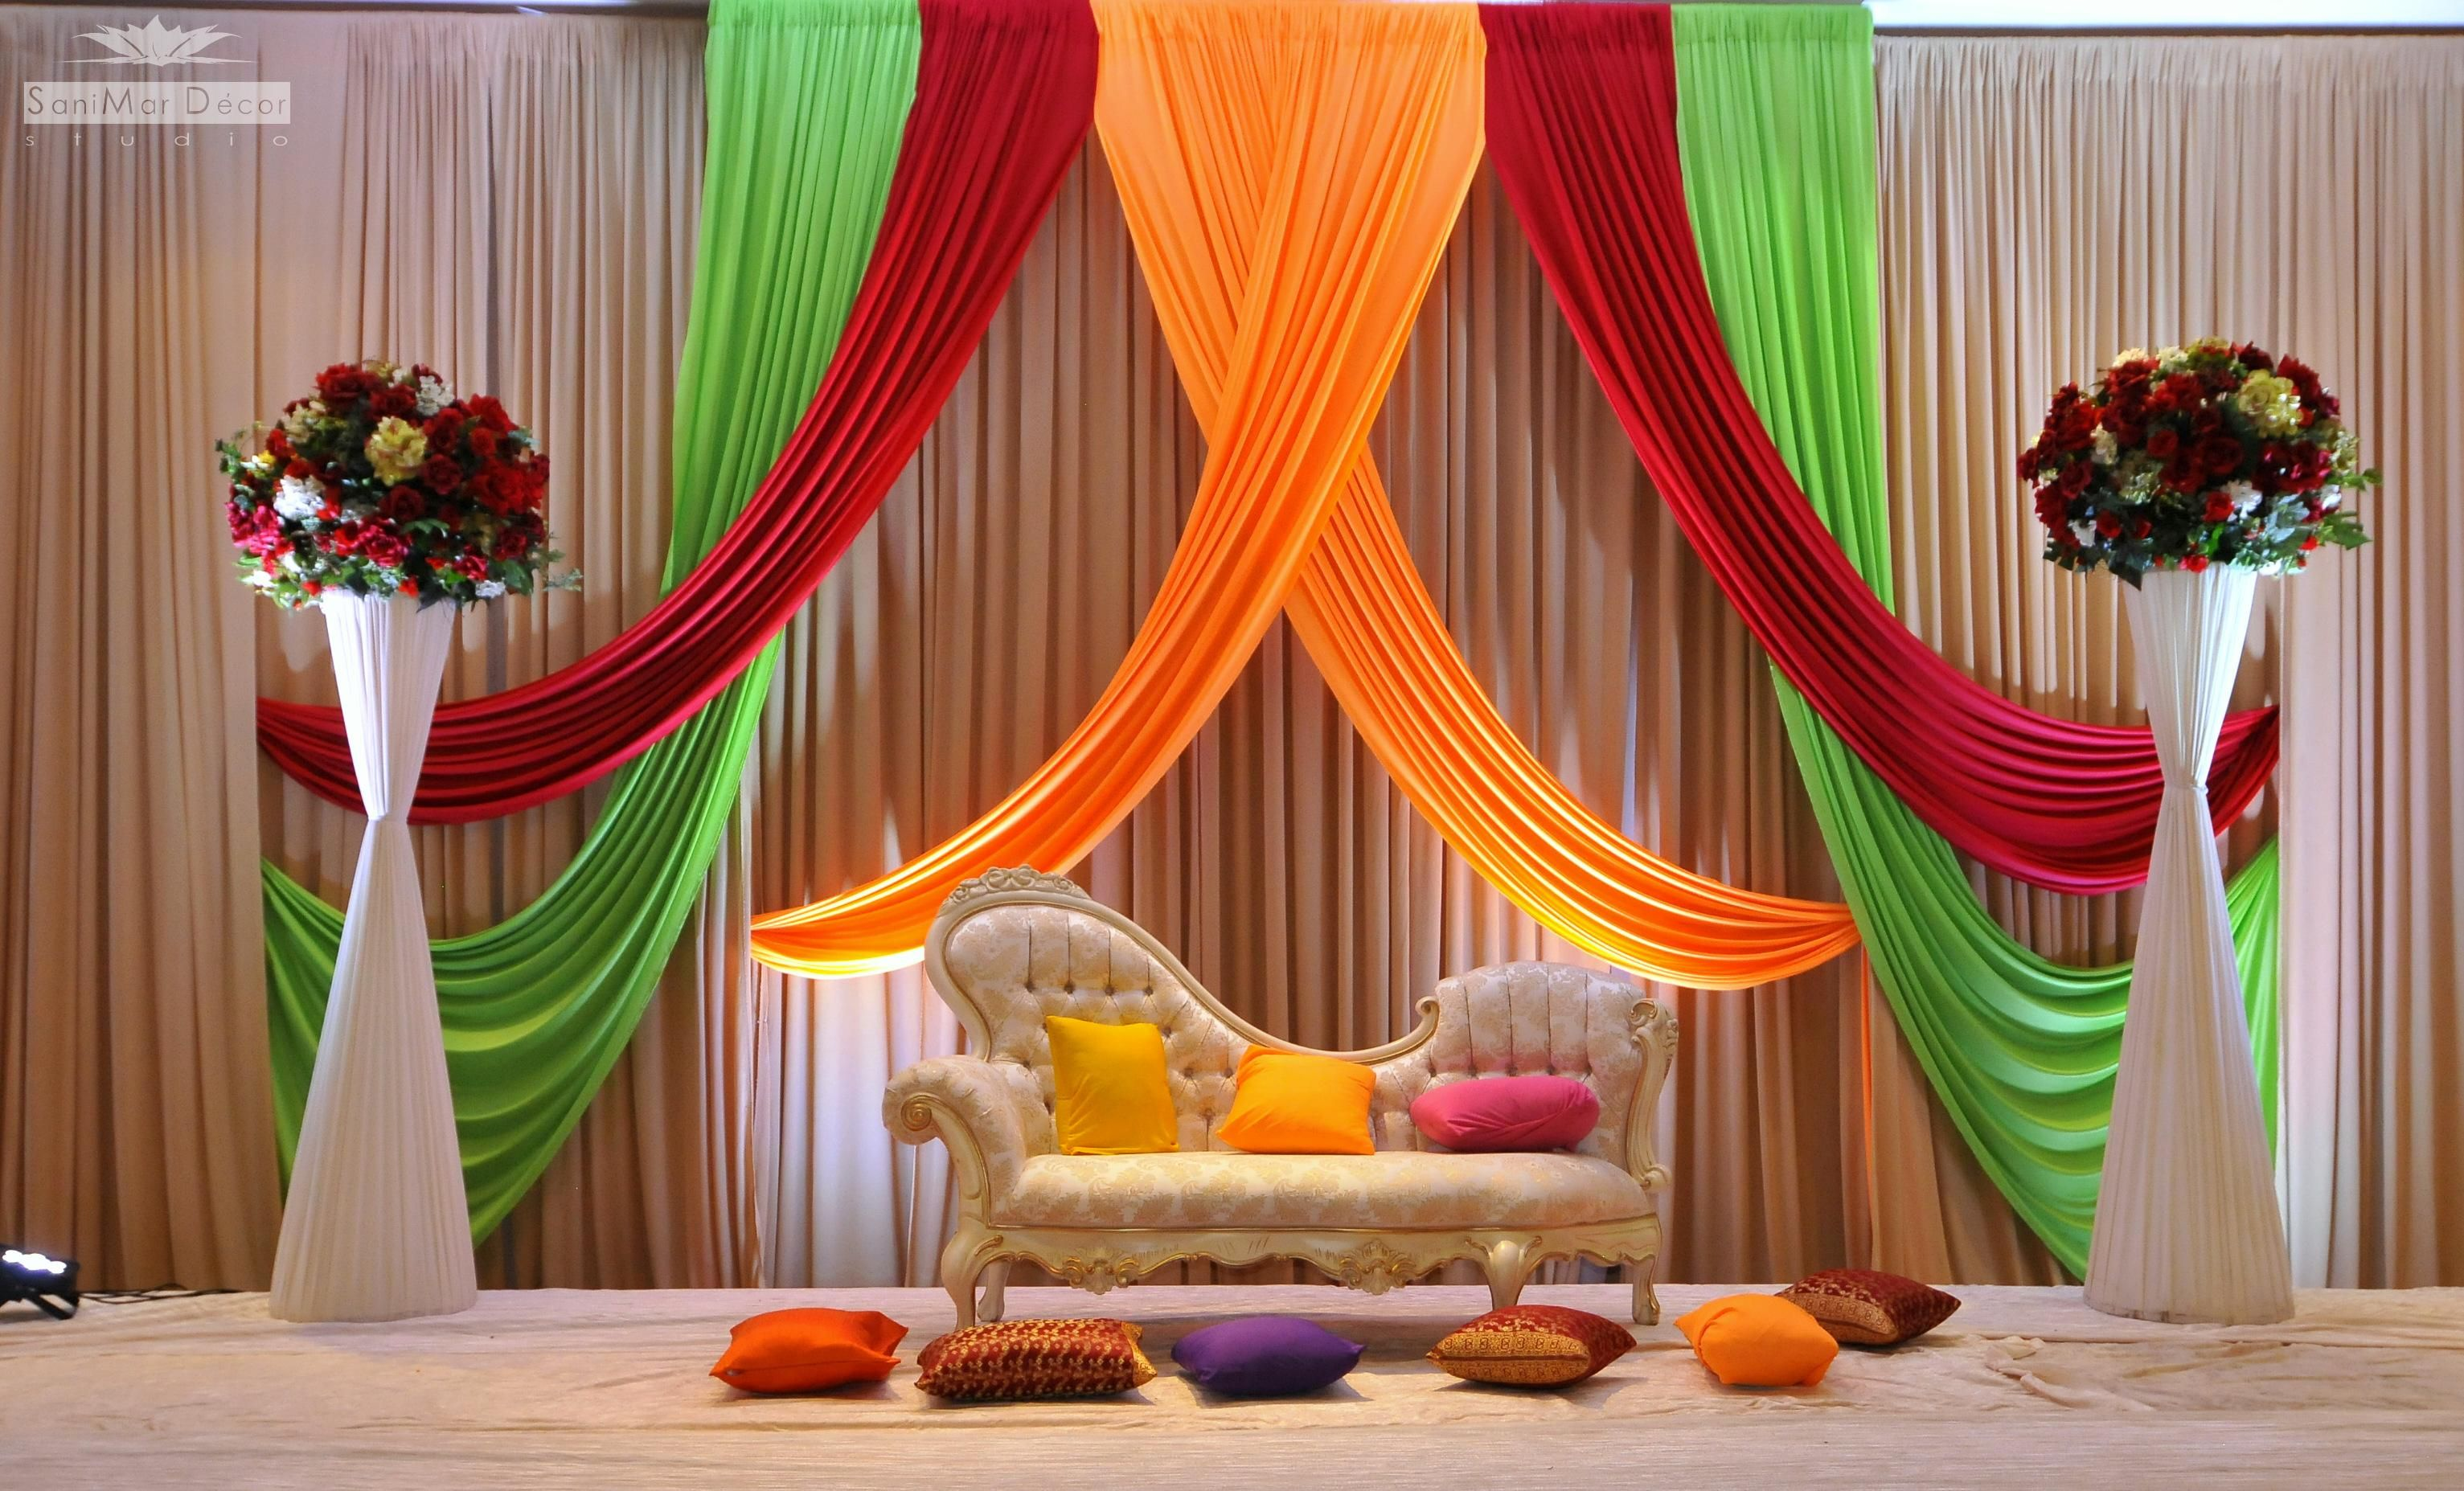 Wedding decorations at home  Wedding Stage Decoration Wedding Decorations Natural Decorations in